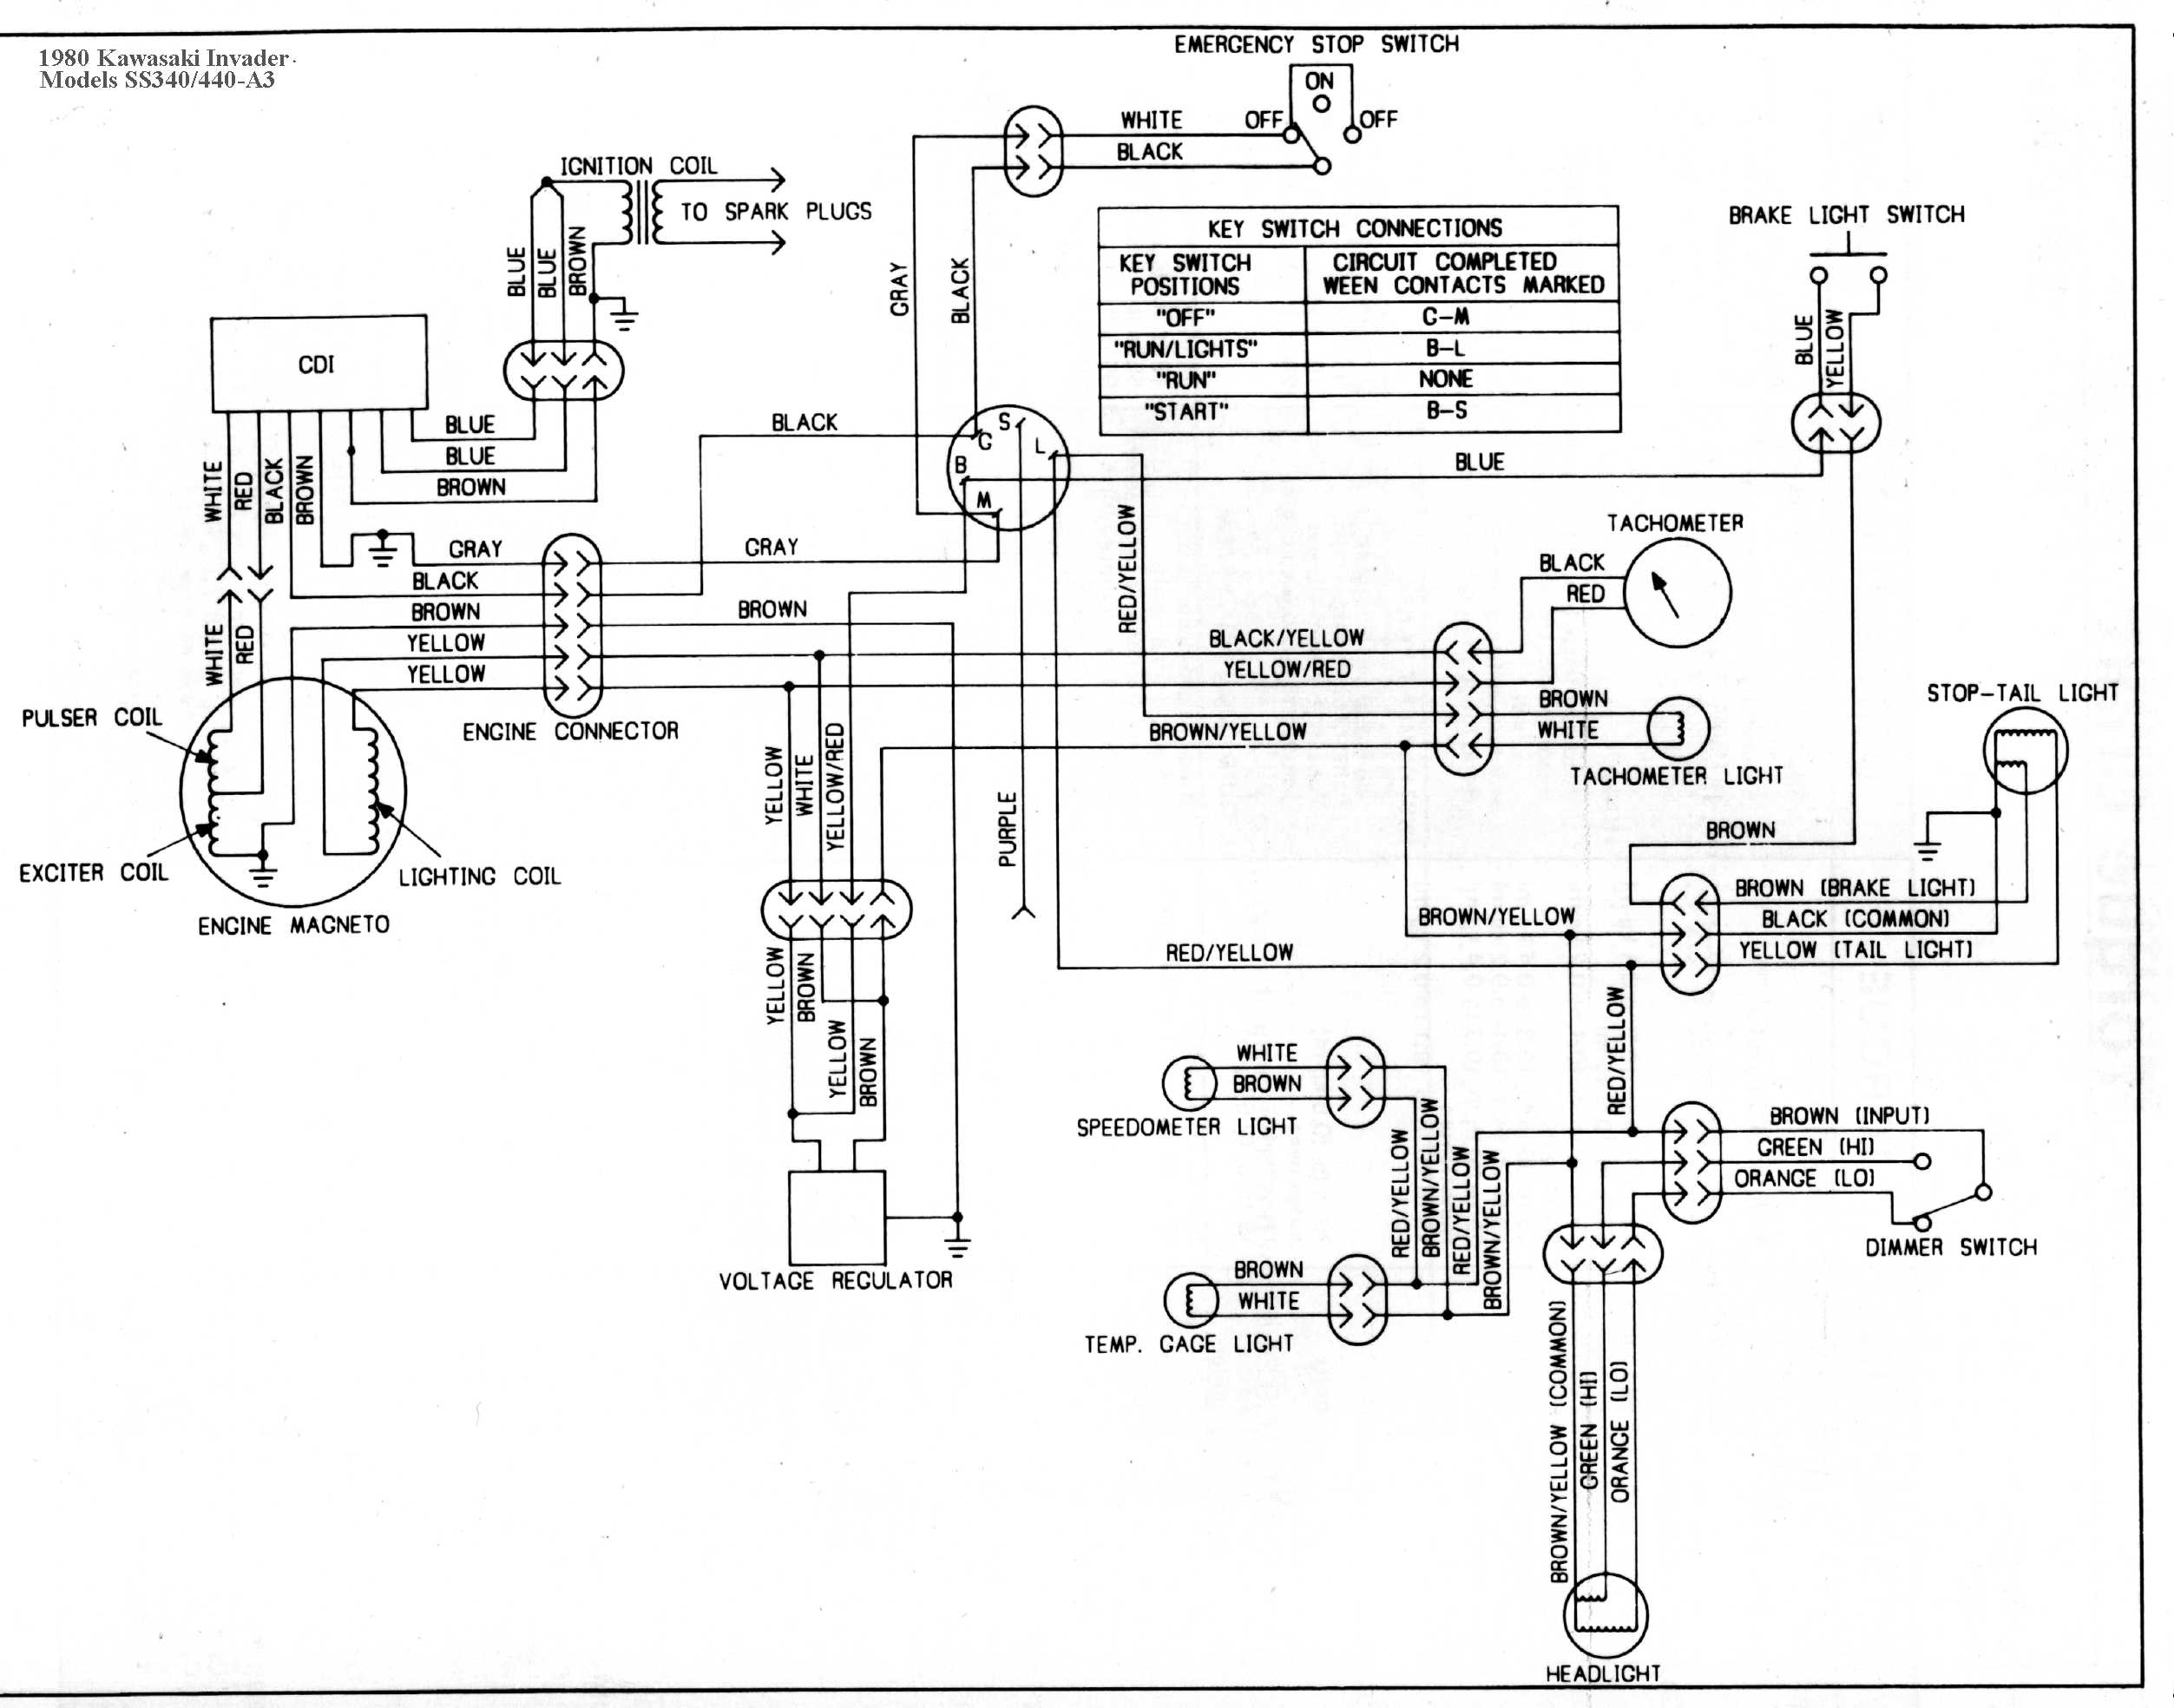 Kawasaki Ltd 440 Wiring Diagram List Of Schematic Circuit 1981 Dodge Invader Snowmobile Diagrams Rh Kawisncats Freevar Com